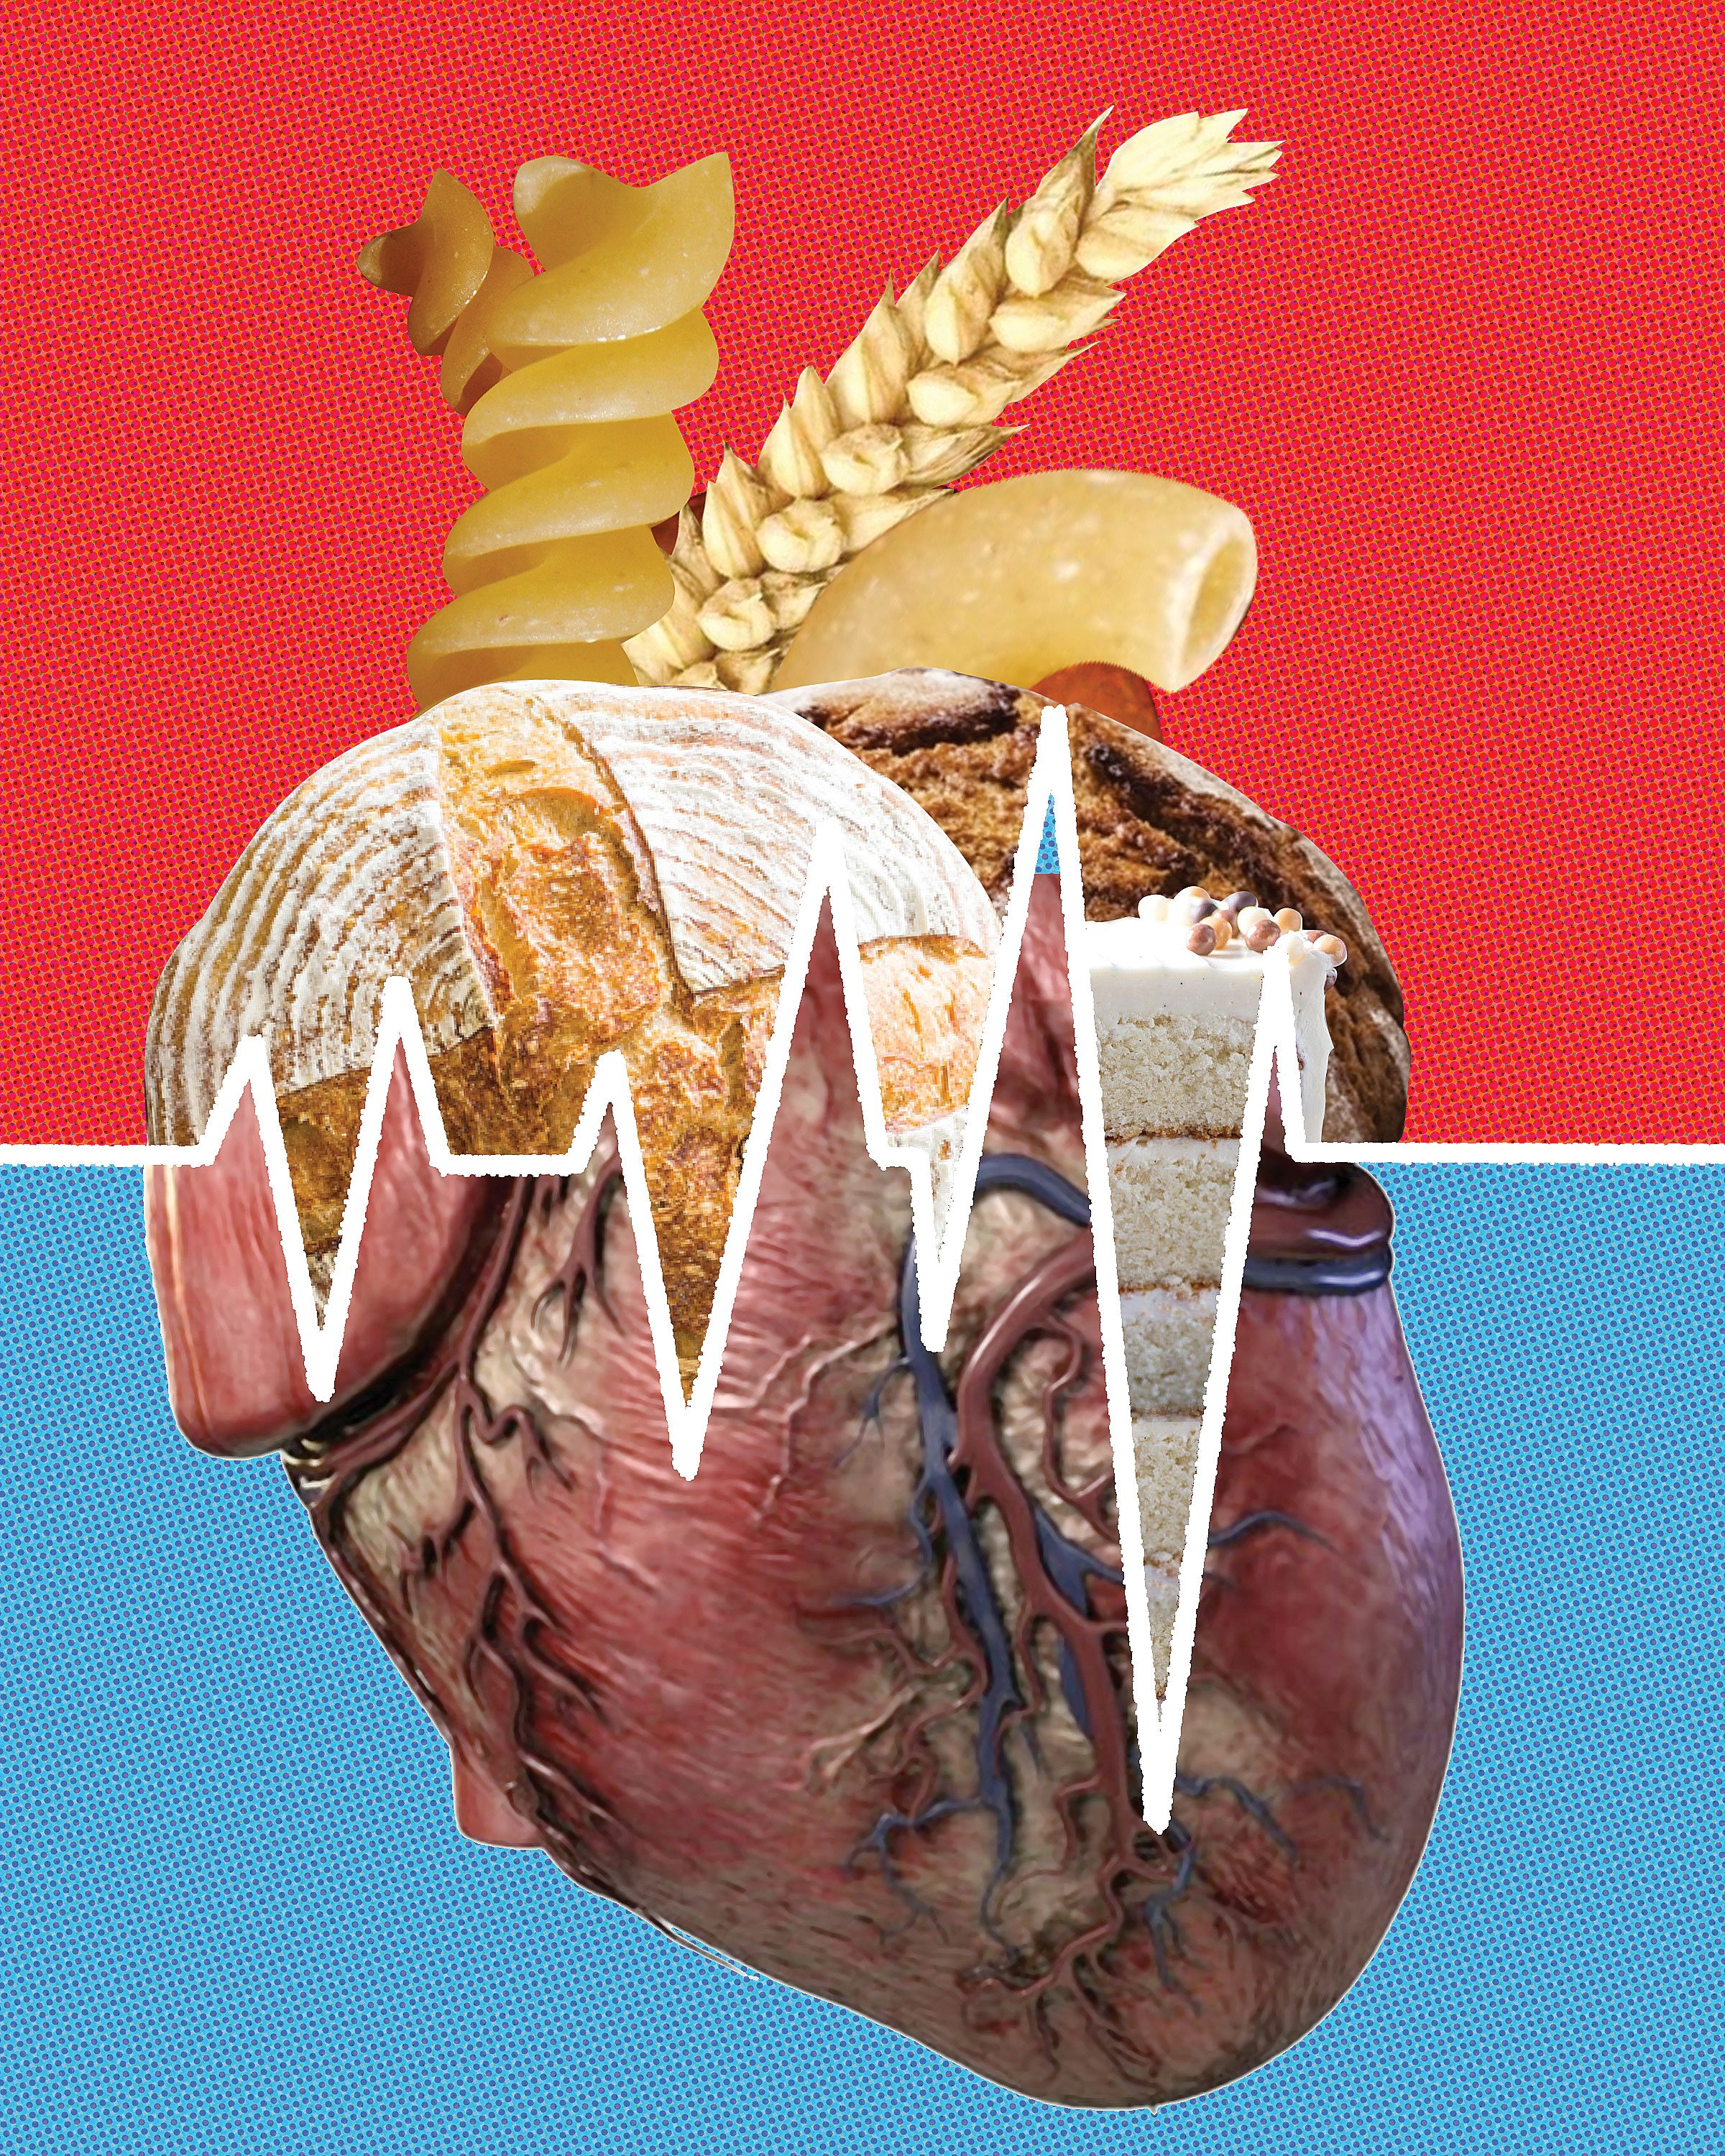 'Carbohydrates are killing us'